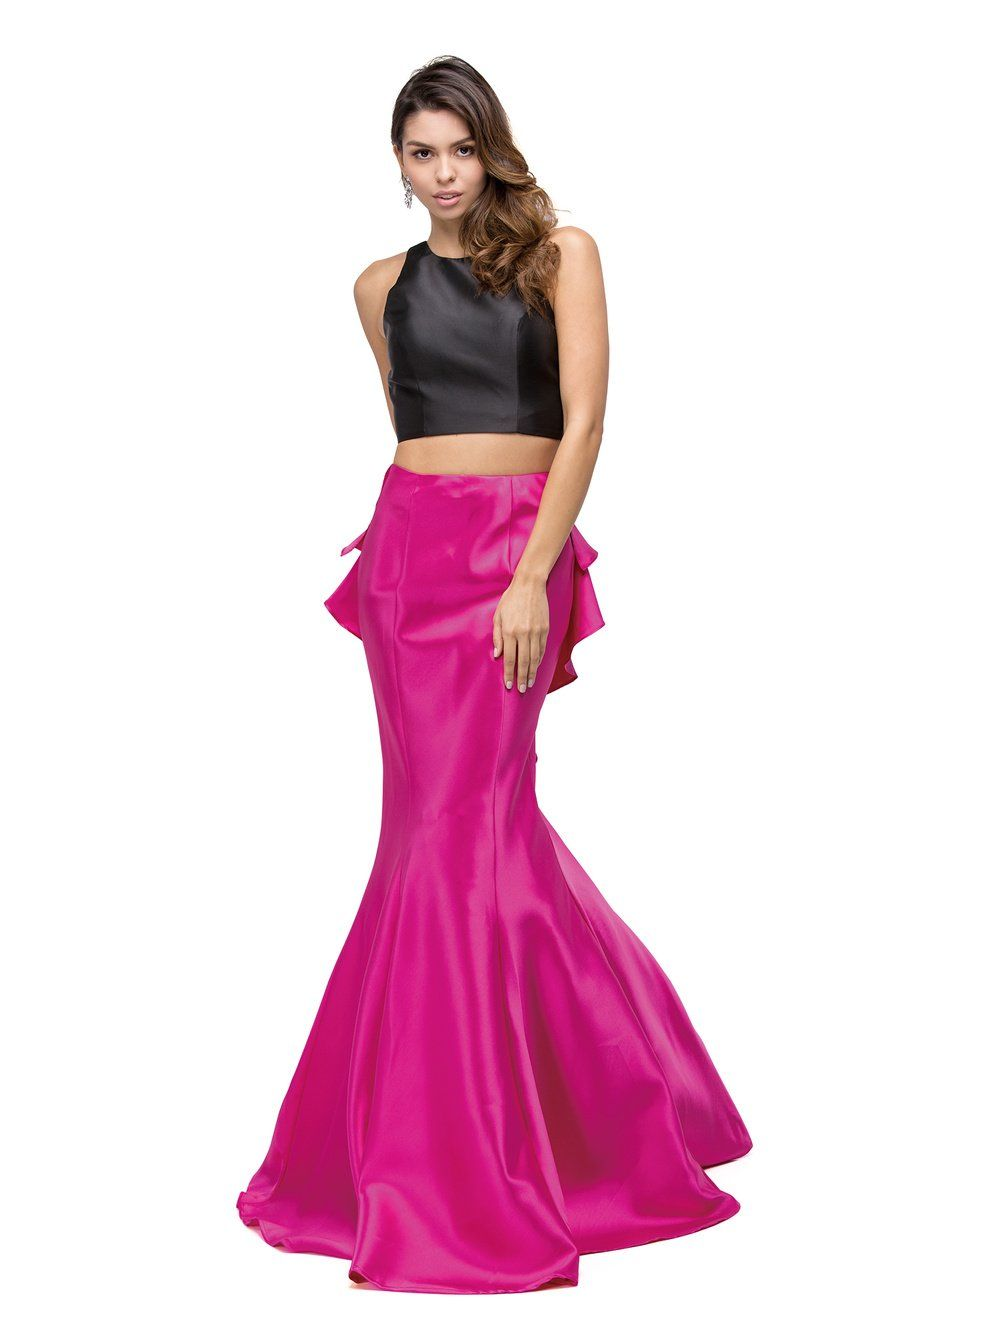 678cc9cb40c6 Short Top Long Ruffled Back Skirt Two Piece Prom Dress. Style Number: DQ  9767 Available in Black/Fuchsia, Black/Royal Blue, Black/Red